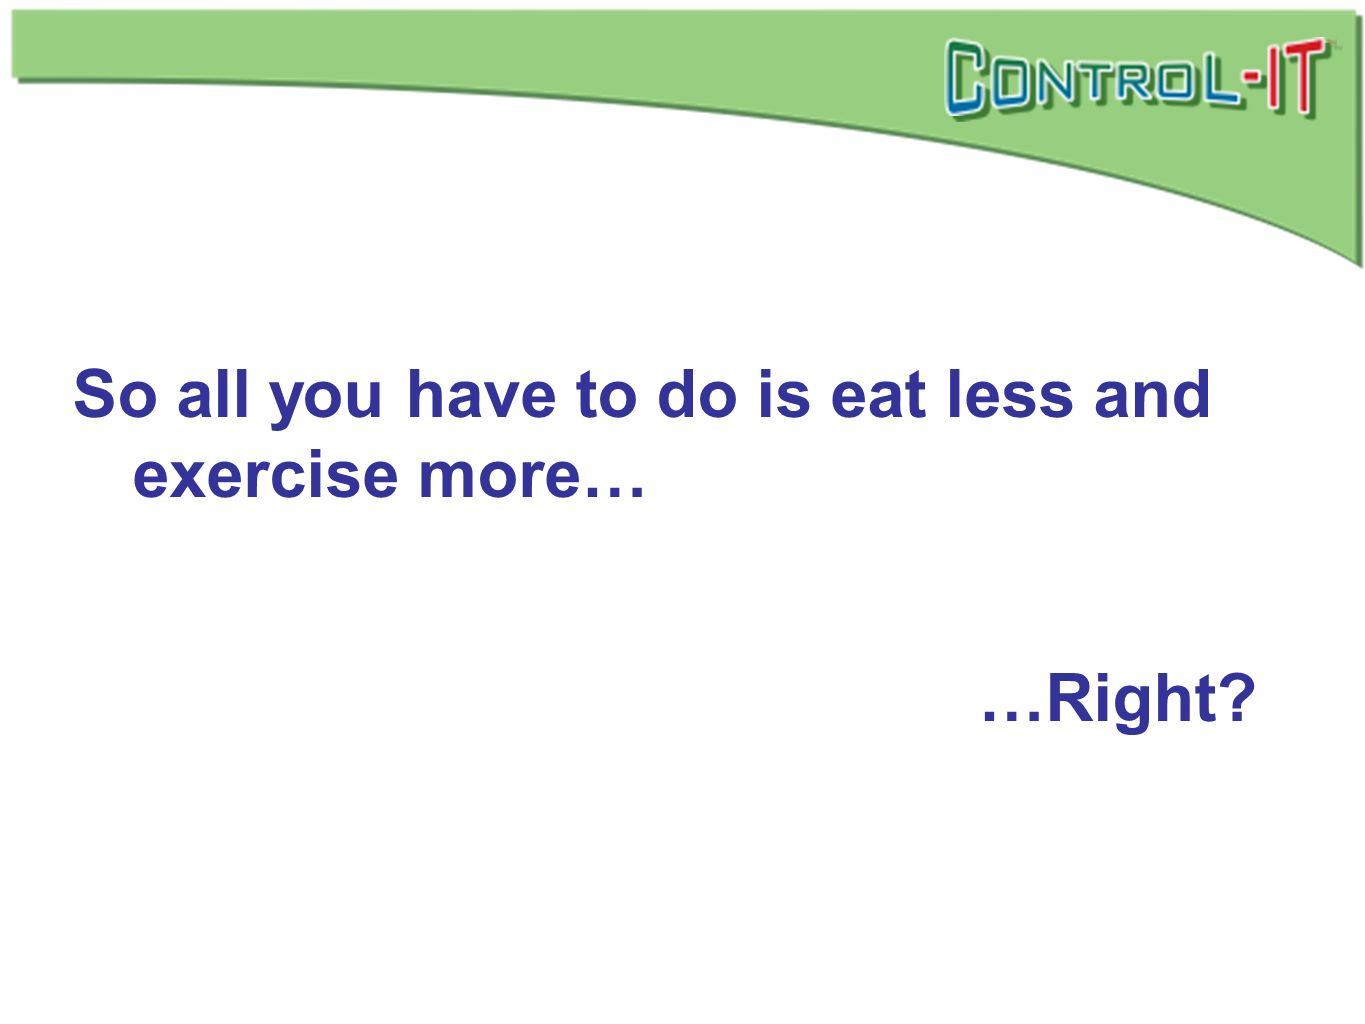 So all you have to do is eat less and exercise more…